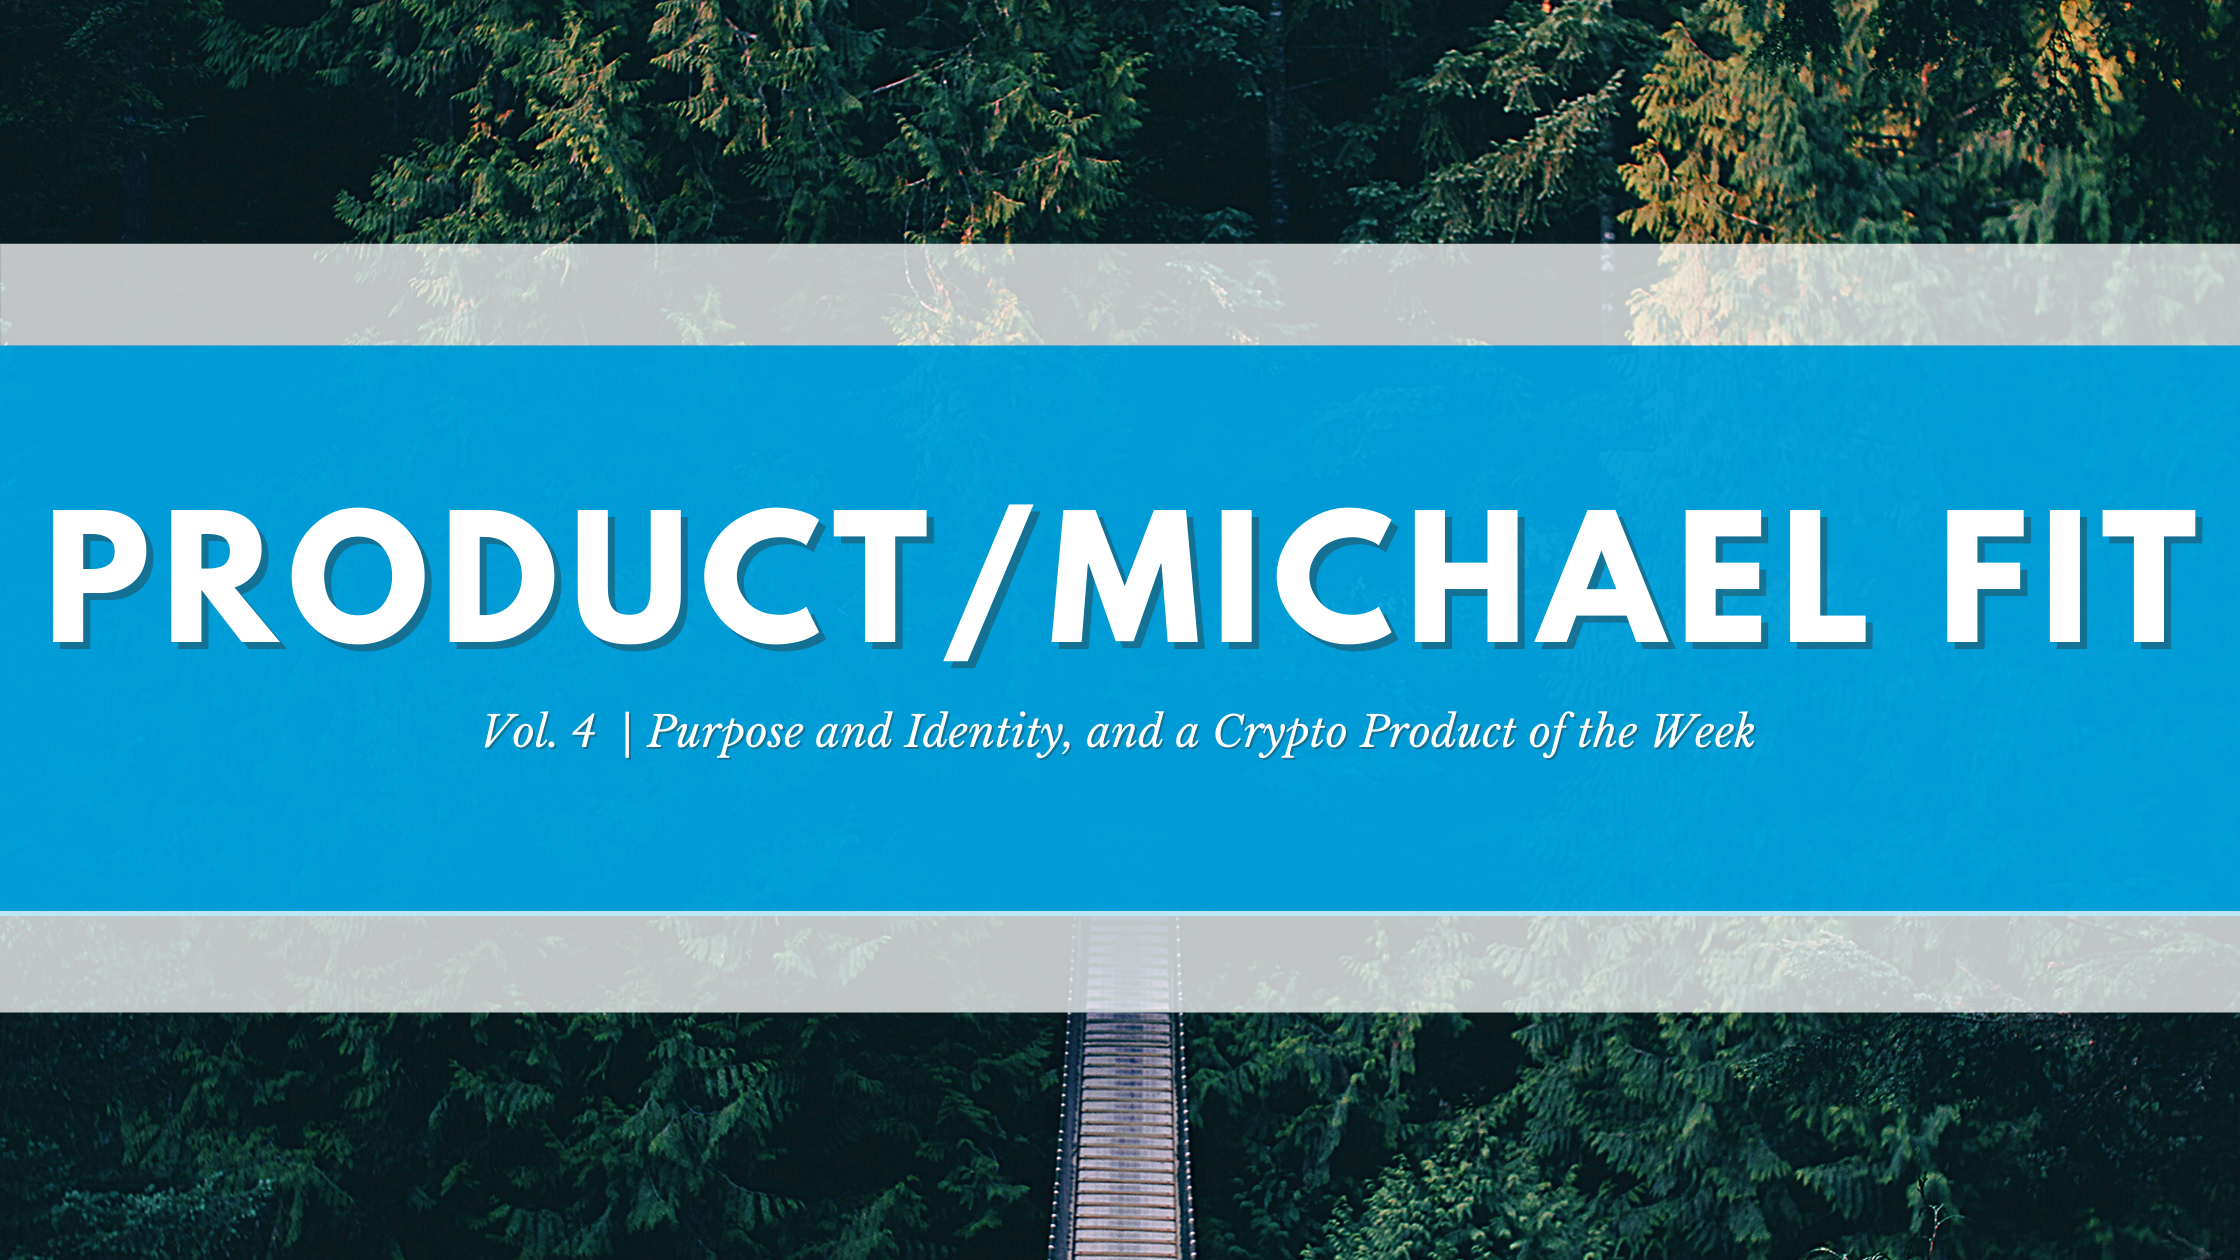 Product/Michael Fit: Vol 4 | 11/29/20